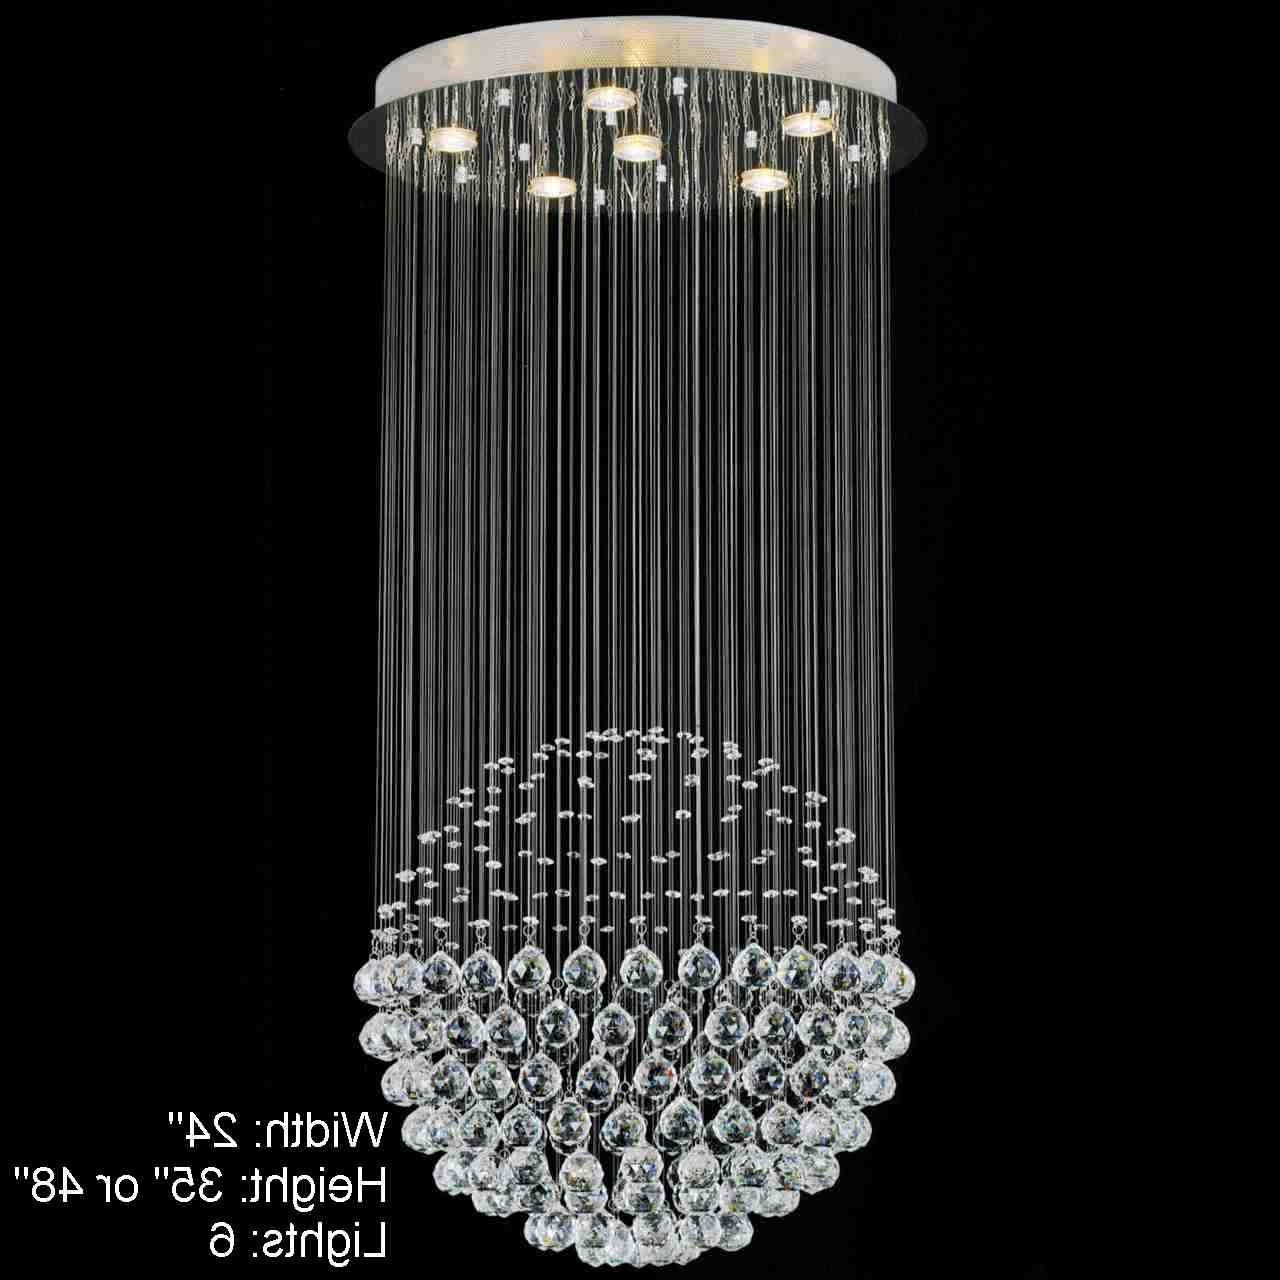 Chandelier Lights Intended For Latest Brizzo Lighting Stores (View 12 of 15)